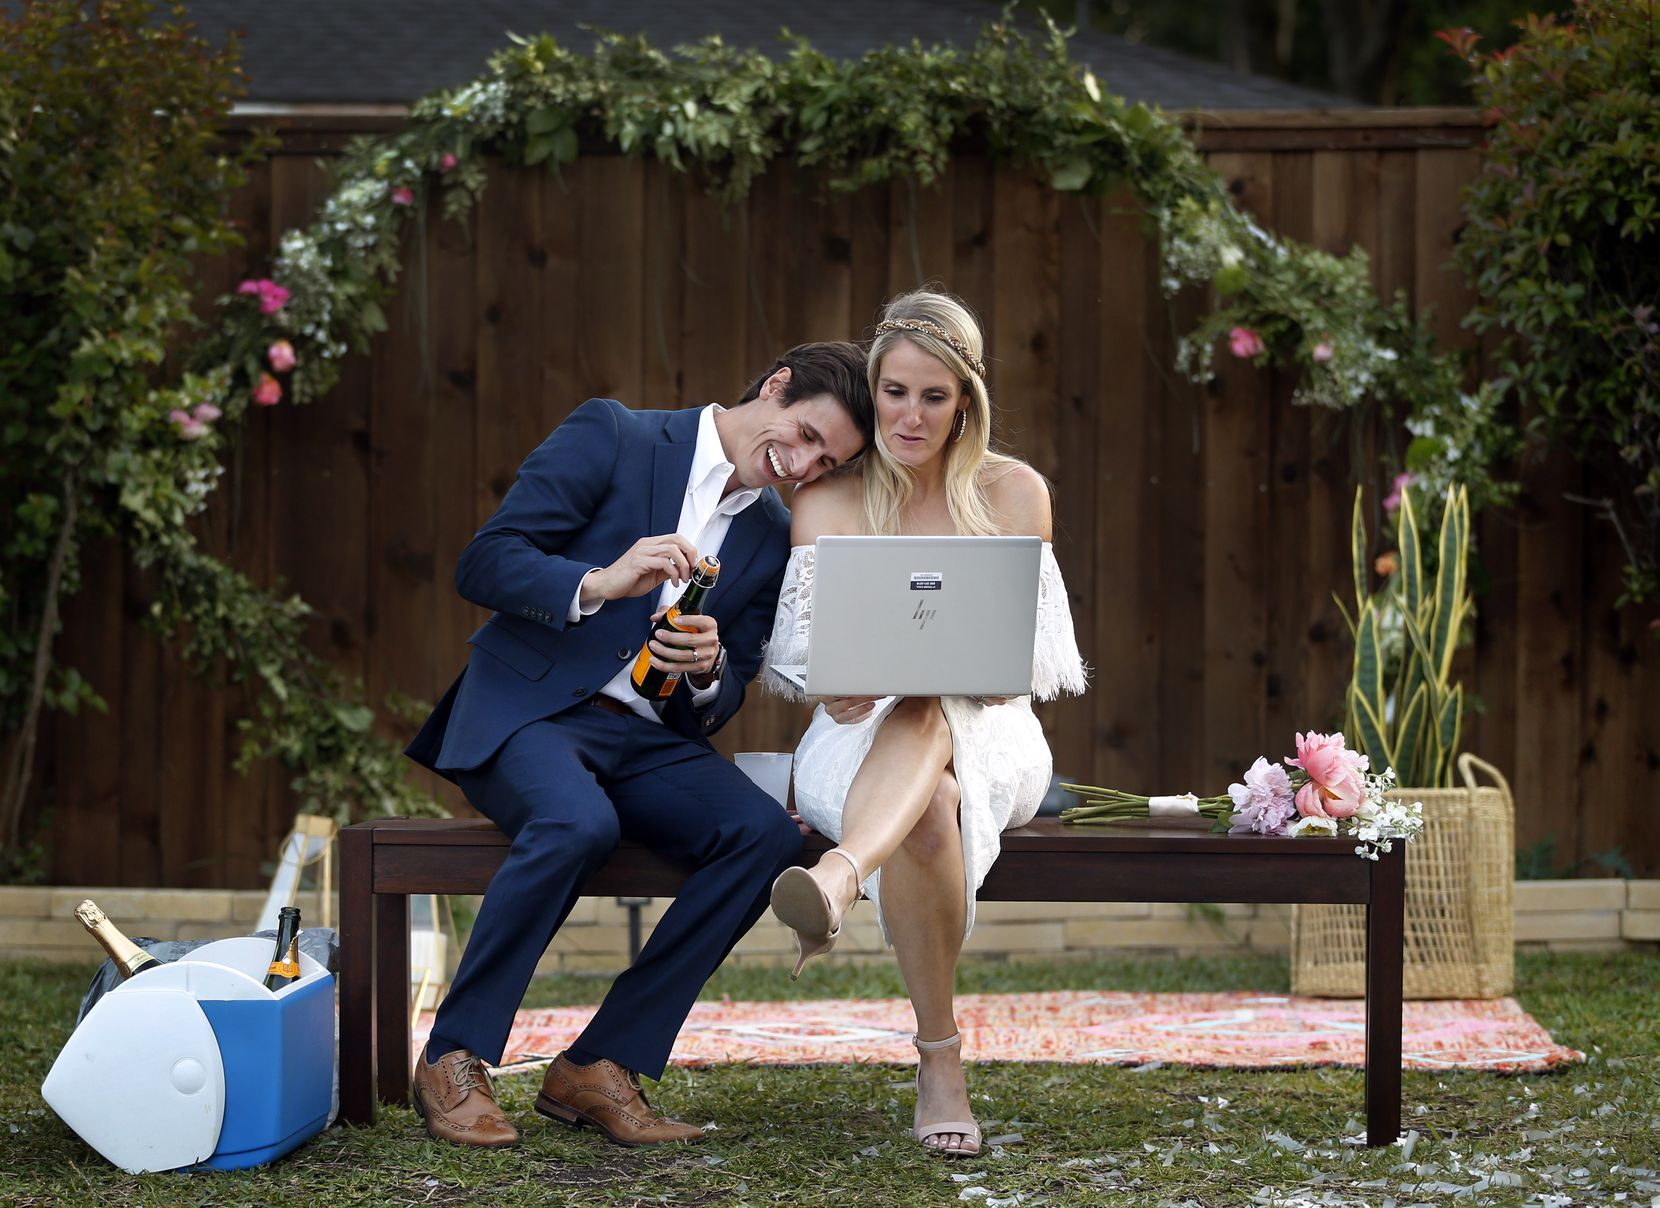 After their backyard wedding, the Houshians joined extended family and friends on a video chat as they popped champagne to celebrate.